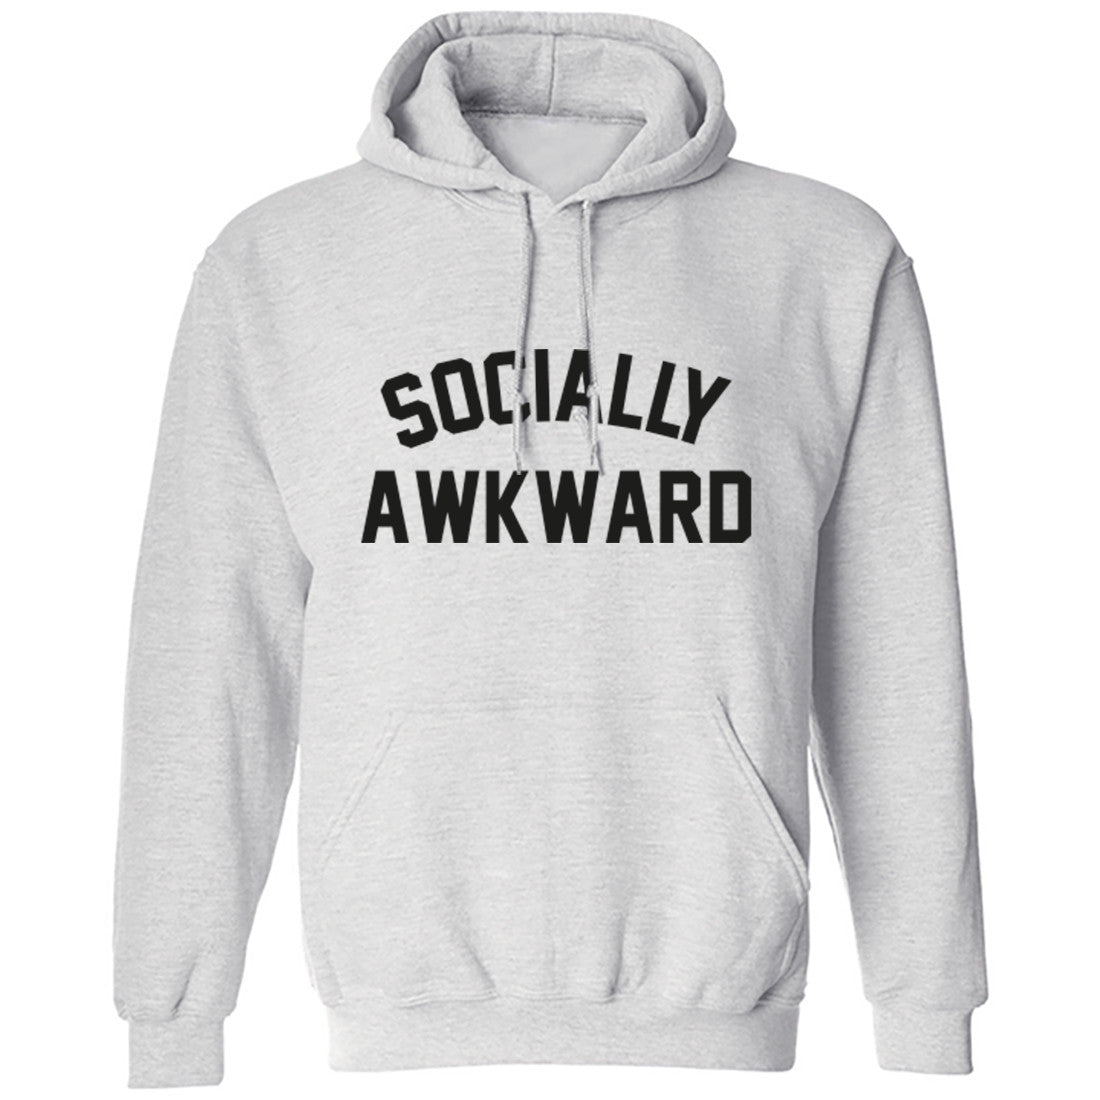 Socially Awkward Unisex Hoodie K0250 - Illustrated Identity Ltd.